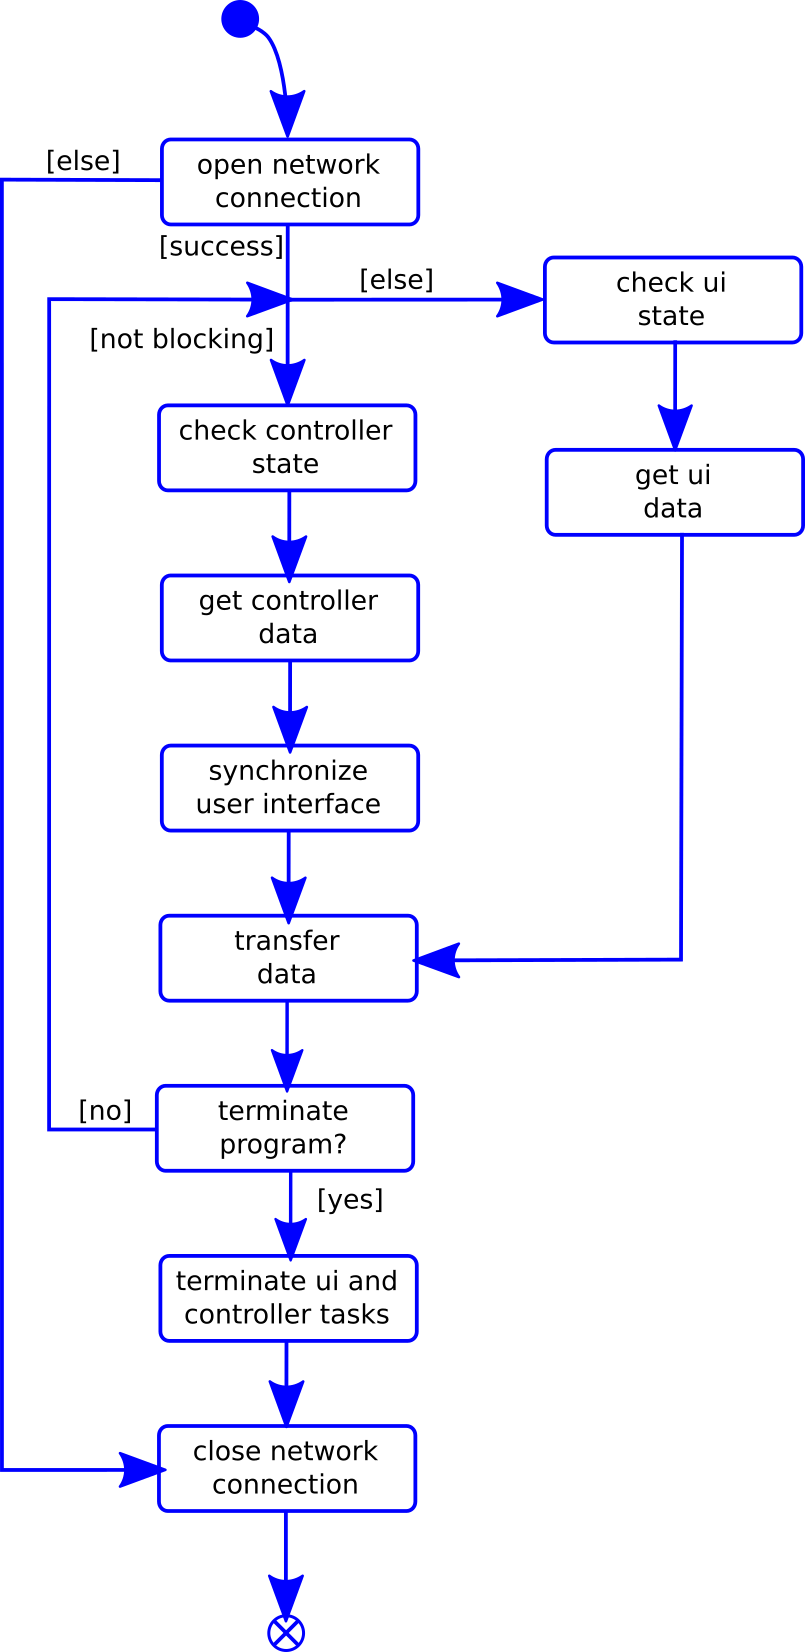 Figure 3: Program sequence in the environment task